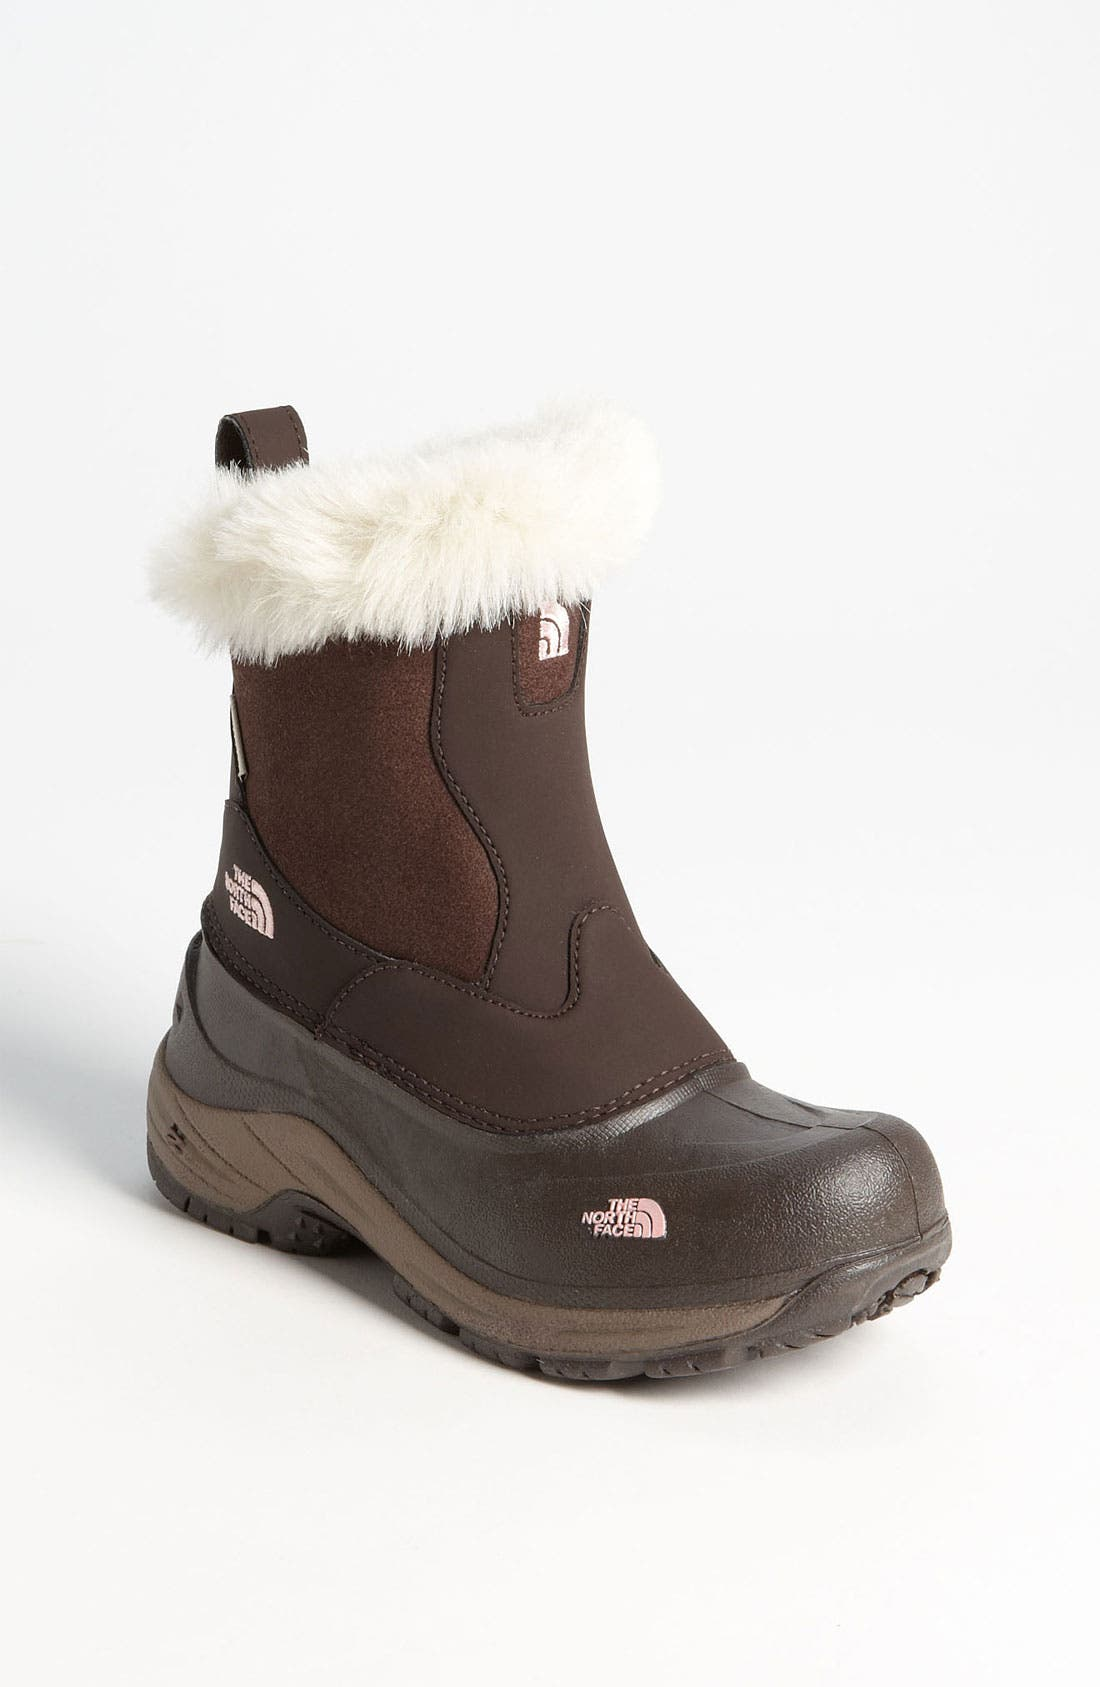 Main Image - The North Face 'Greenland' Boot (Little Kid & Big Kid)